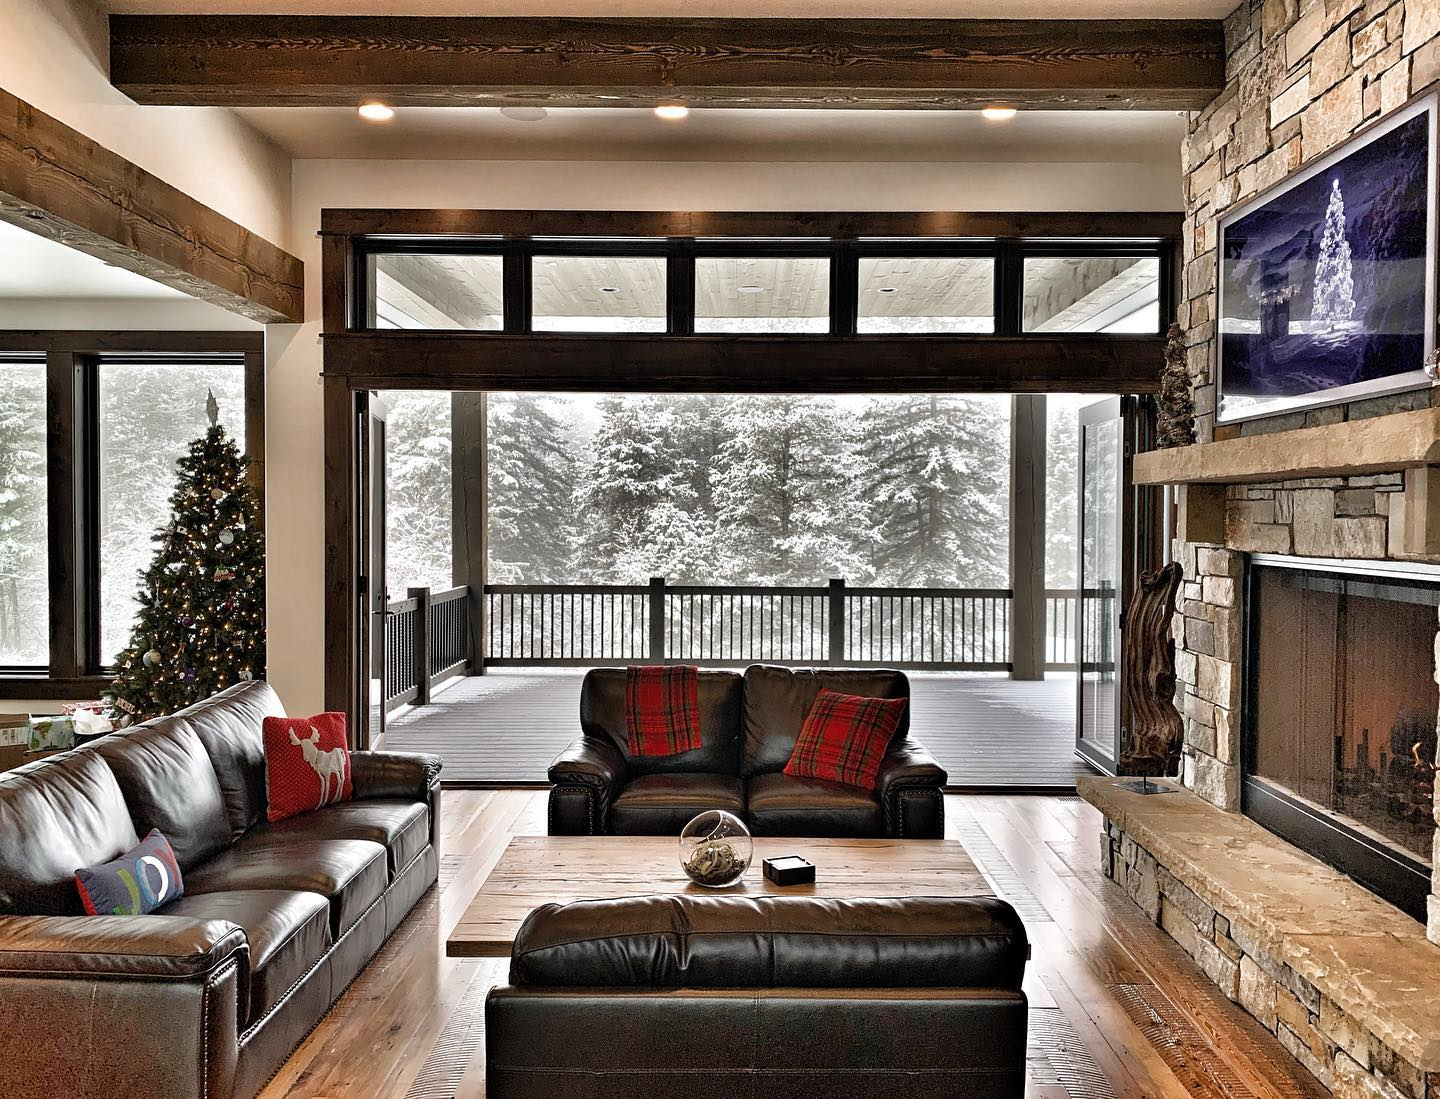 Mountain Living has nothing on this Old Montana home! Merry Christmas Eve! ️ whitefish custom home builder